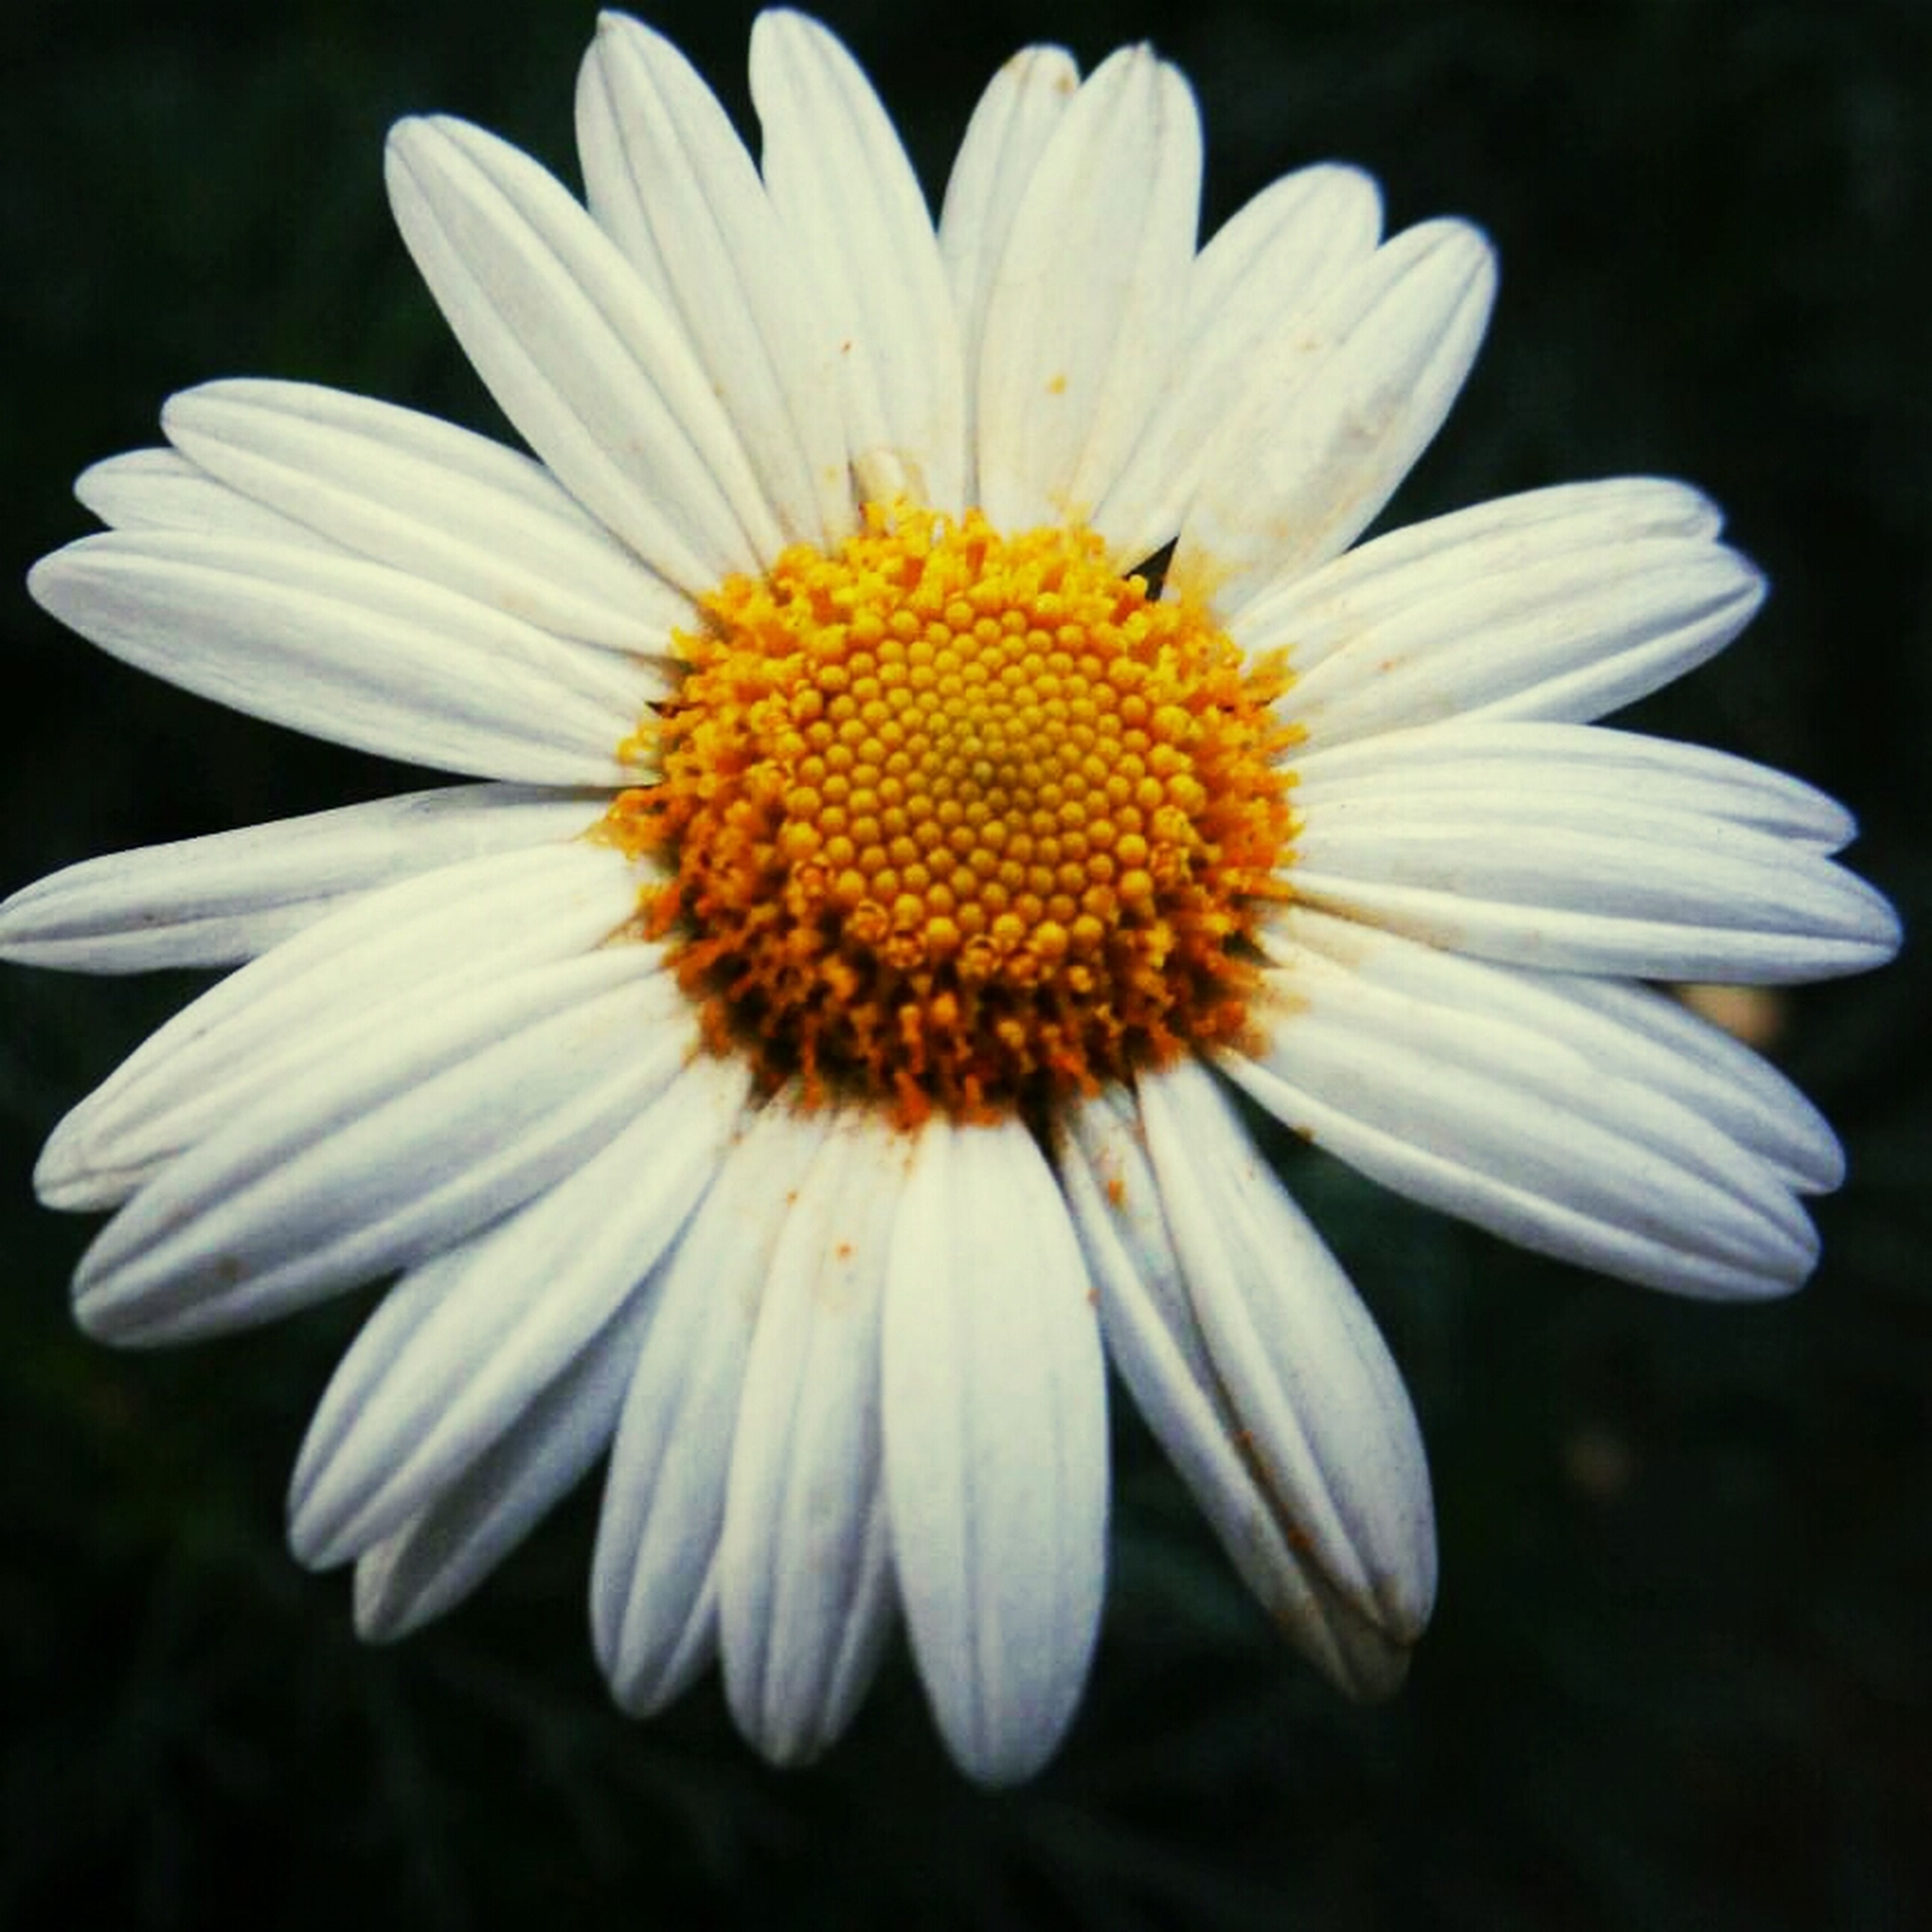 flower, petal, freshness, flower head, fragility, pollen, daisy, close-up, white color, growth, beauty in nature, yellow, nature, blooming, single flower, focus on foreground, animal themes, insect, one animal, plant